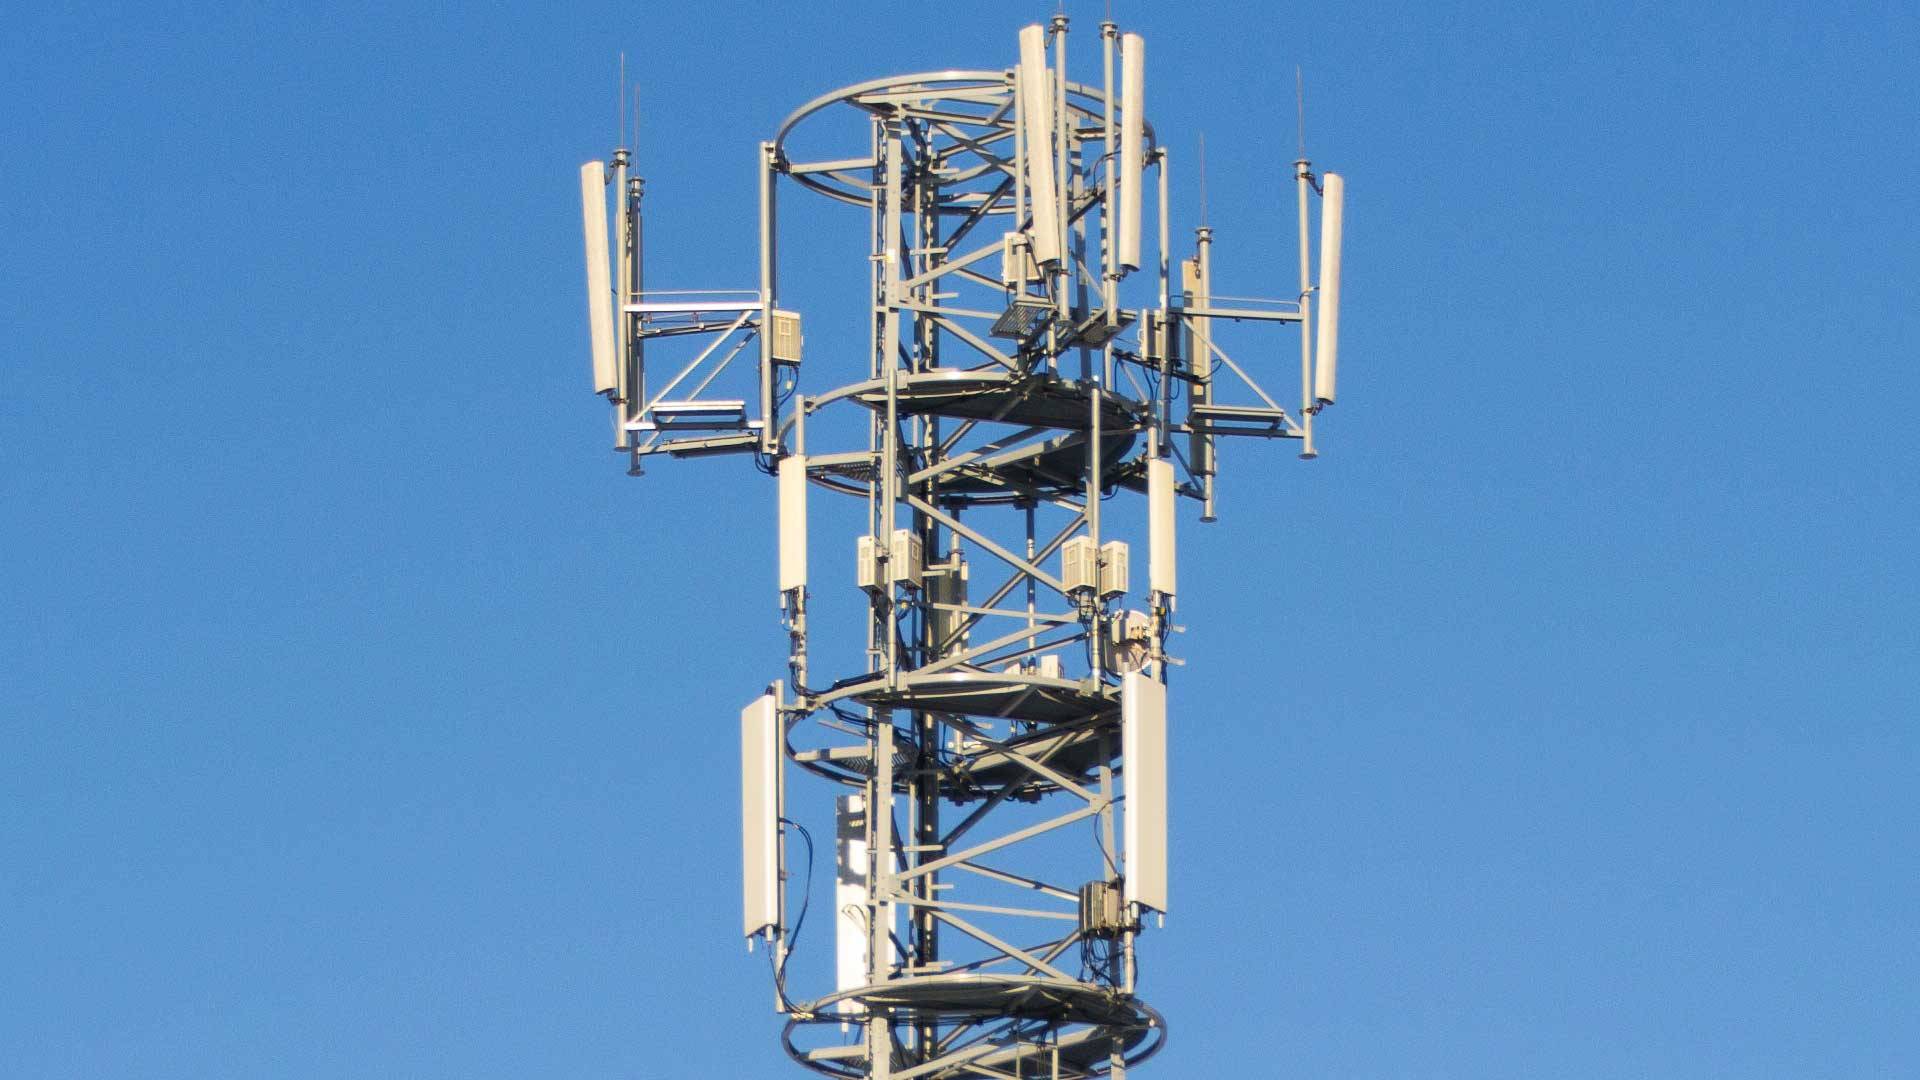 South Africans Burn Down 5G Towers COVID-19